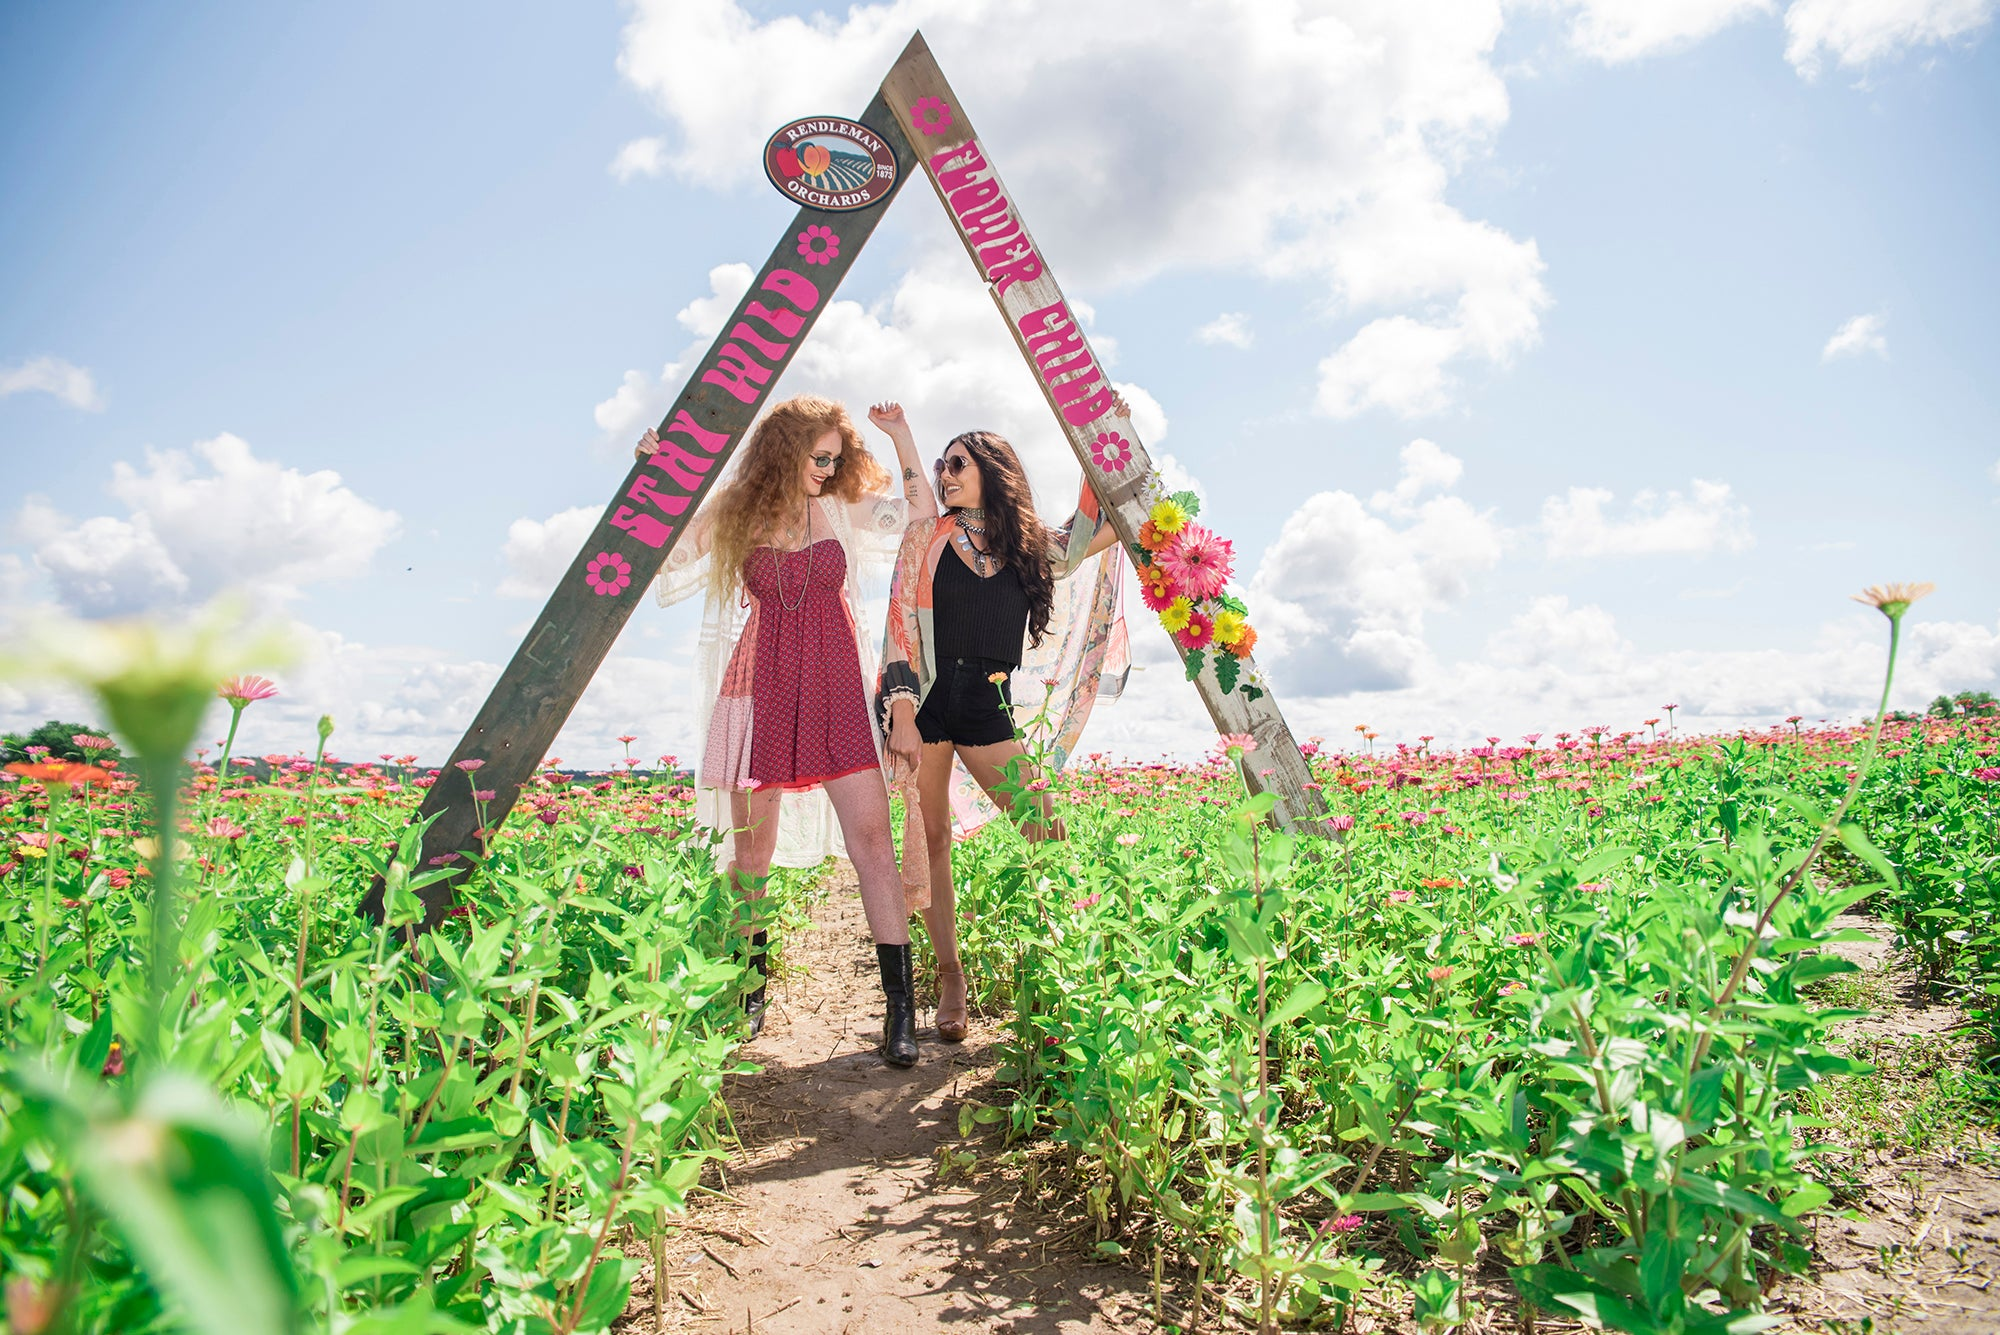 Rendleman Orchards zinnia flower field fashion photo shoot